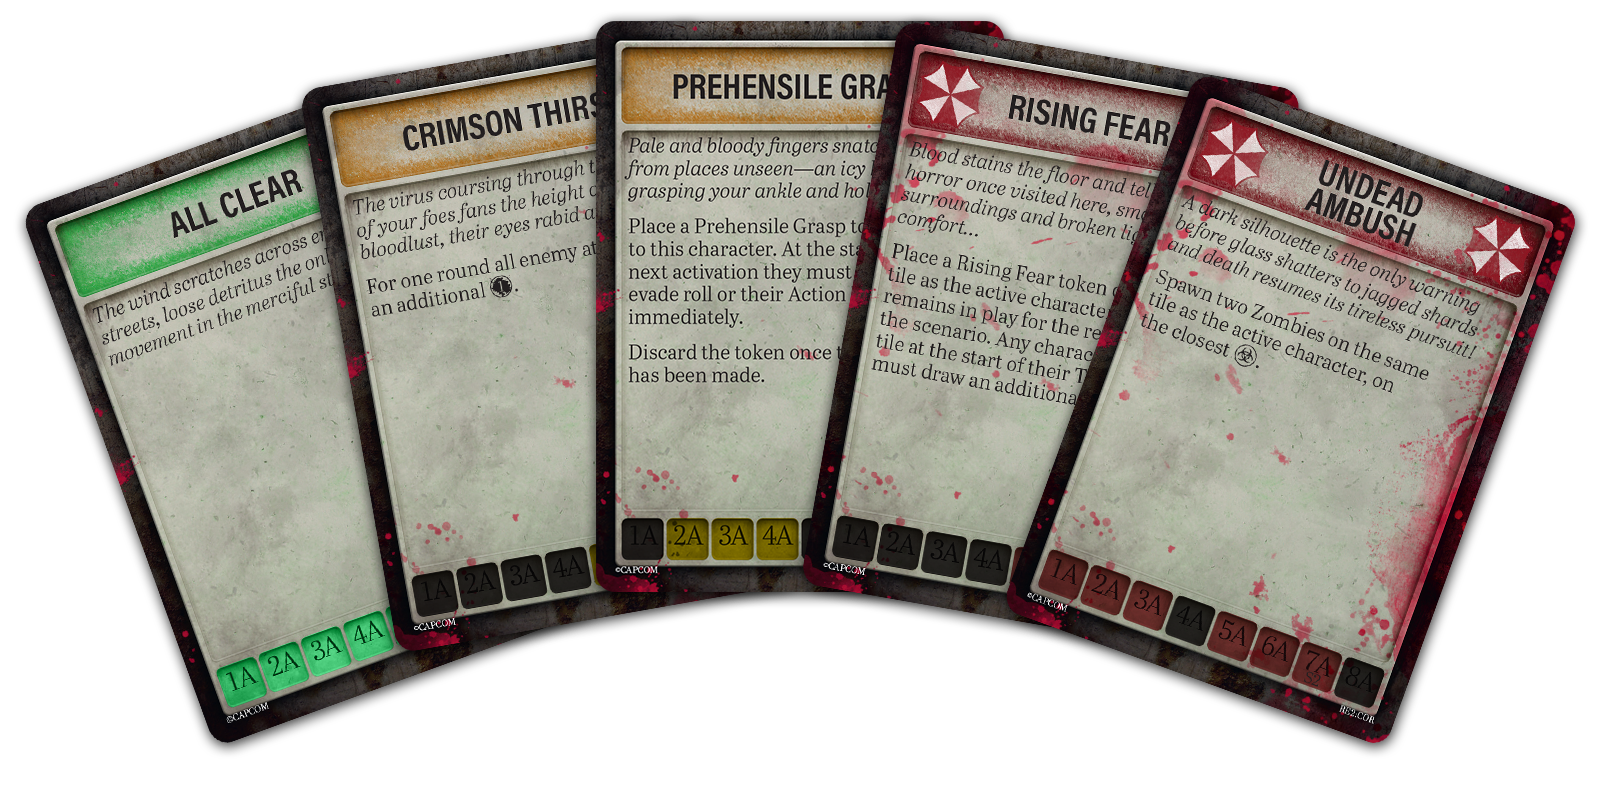 At the end of every player turn you will draw from the Tension Deck revealing a new event that you will have to react to. Sometimes you'll be all clear and can carry on as normal, others you'll have to prepare to fight or flee from an unforeseen foe!